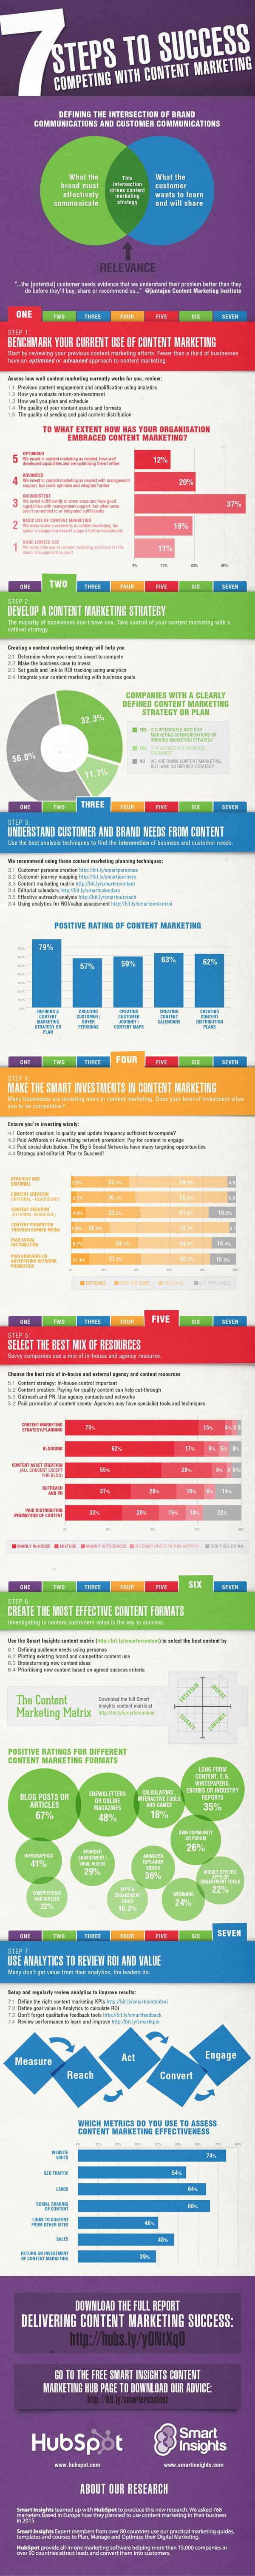 Infographic detailing the 7 steps a business should take for an effective content marketing strategy